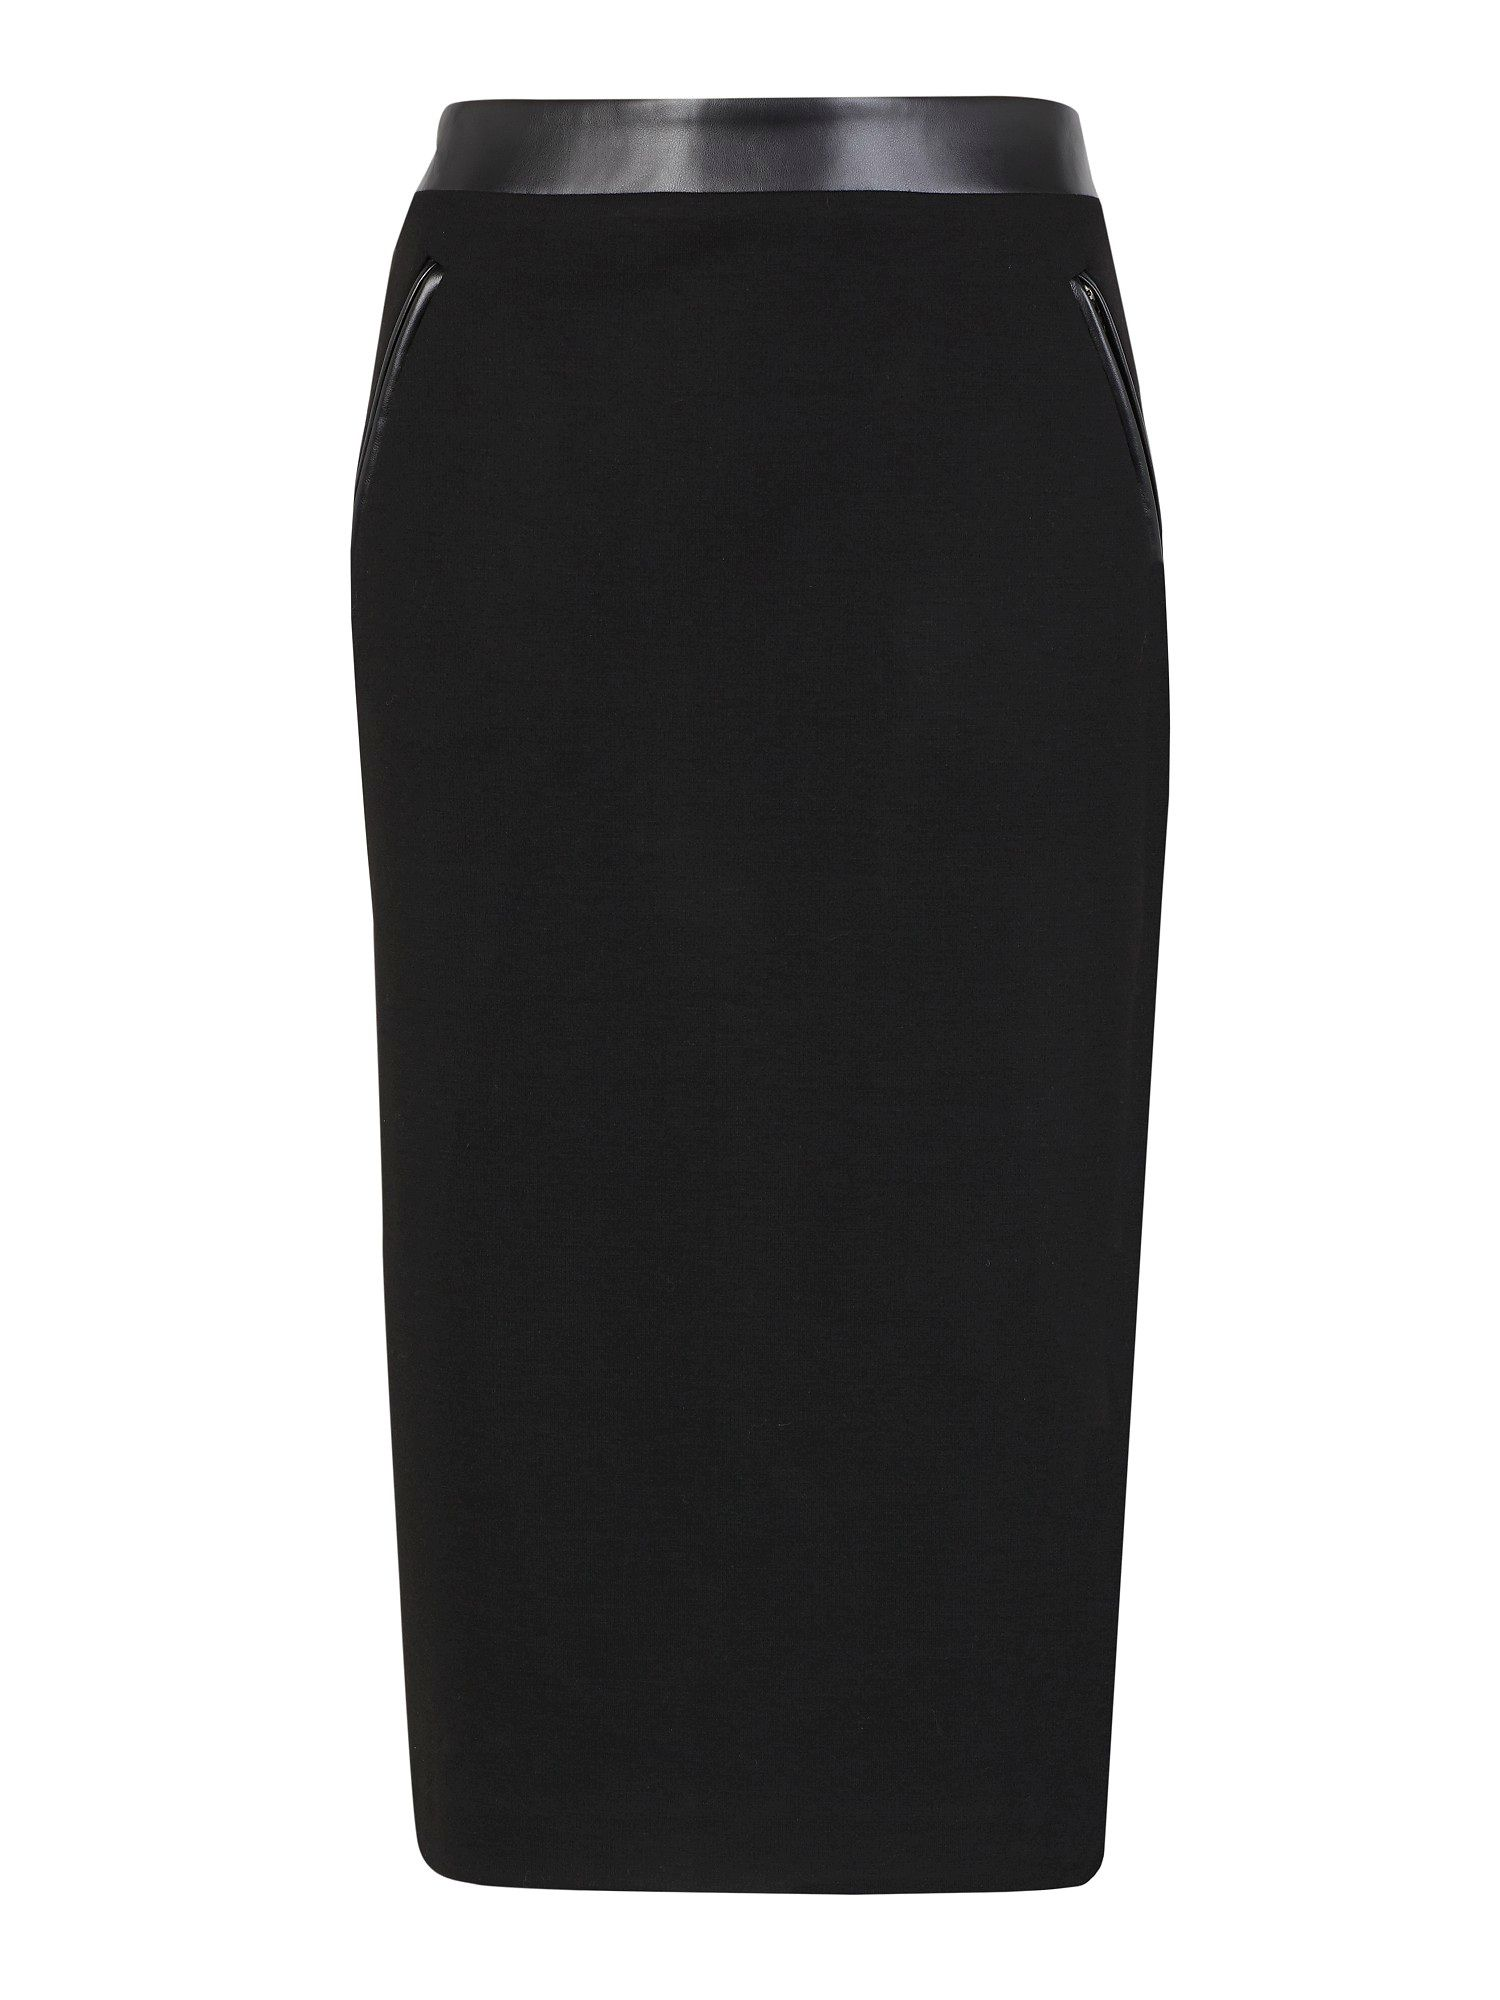 Black leatherette trim pencil skirt